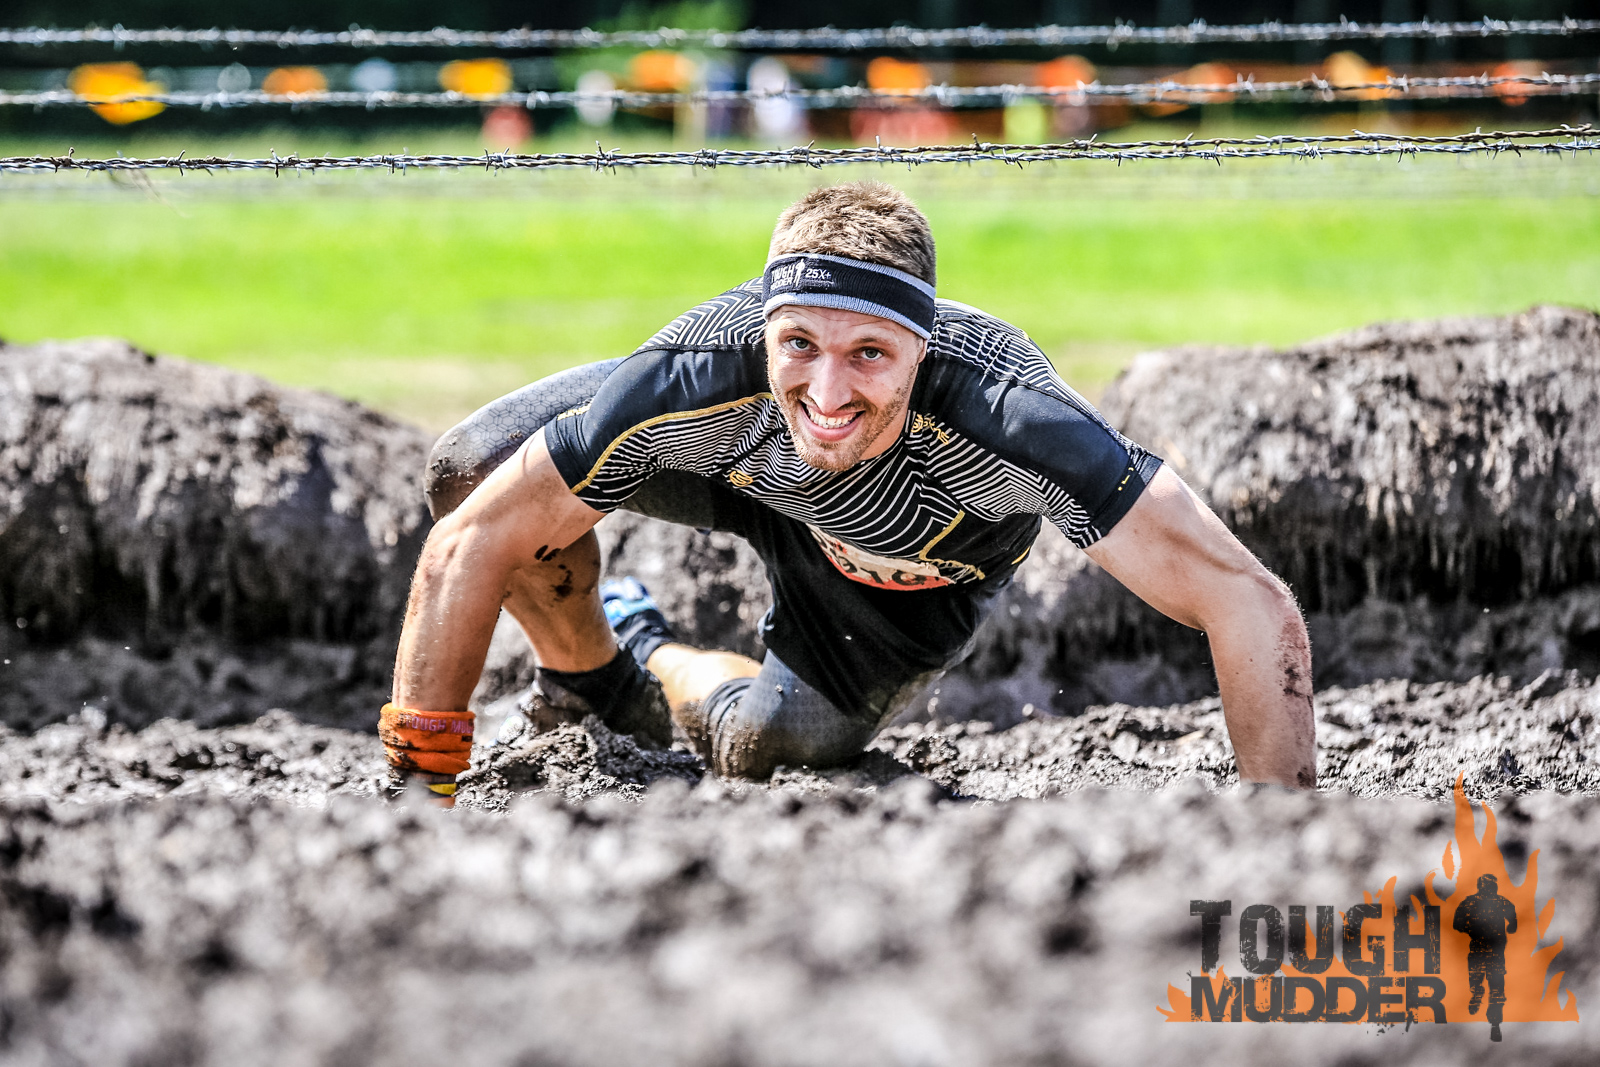 Tough-mudder-2017-sports-photography-edinburgh-glasgow-23.jpg